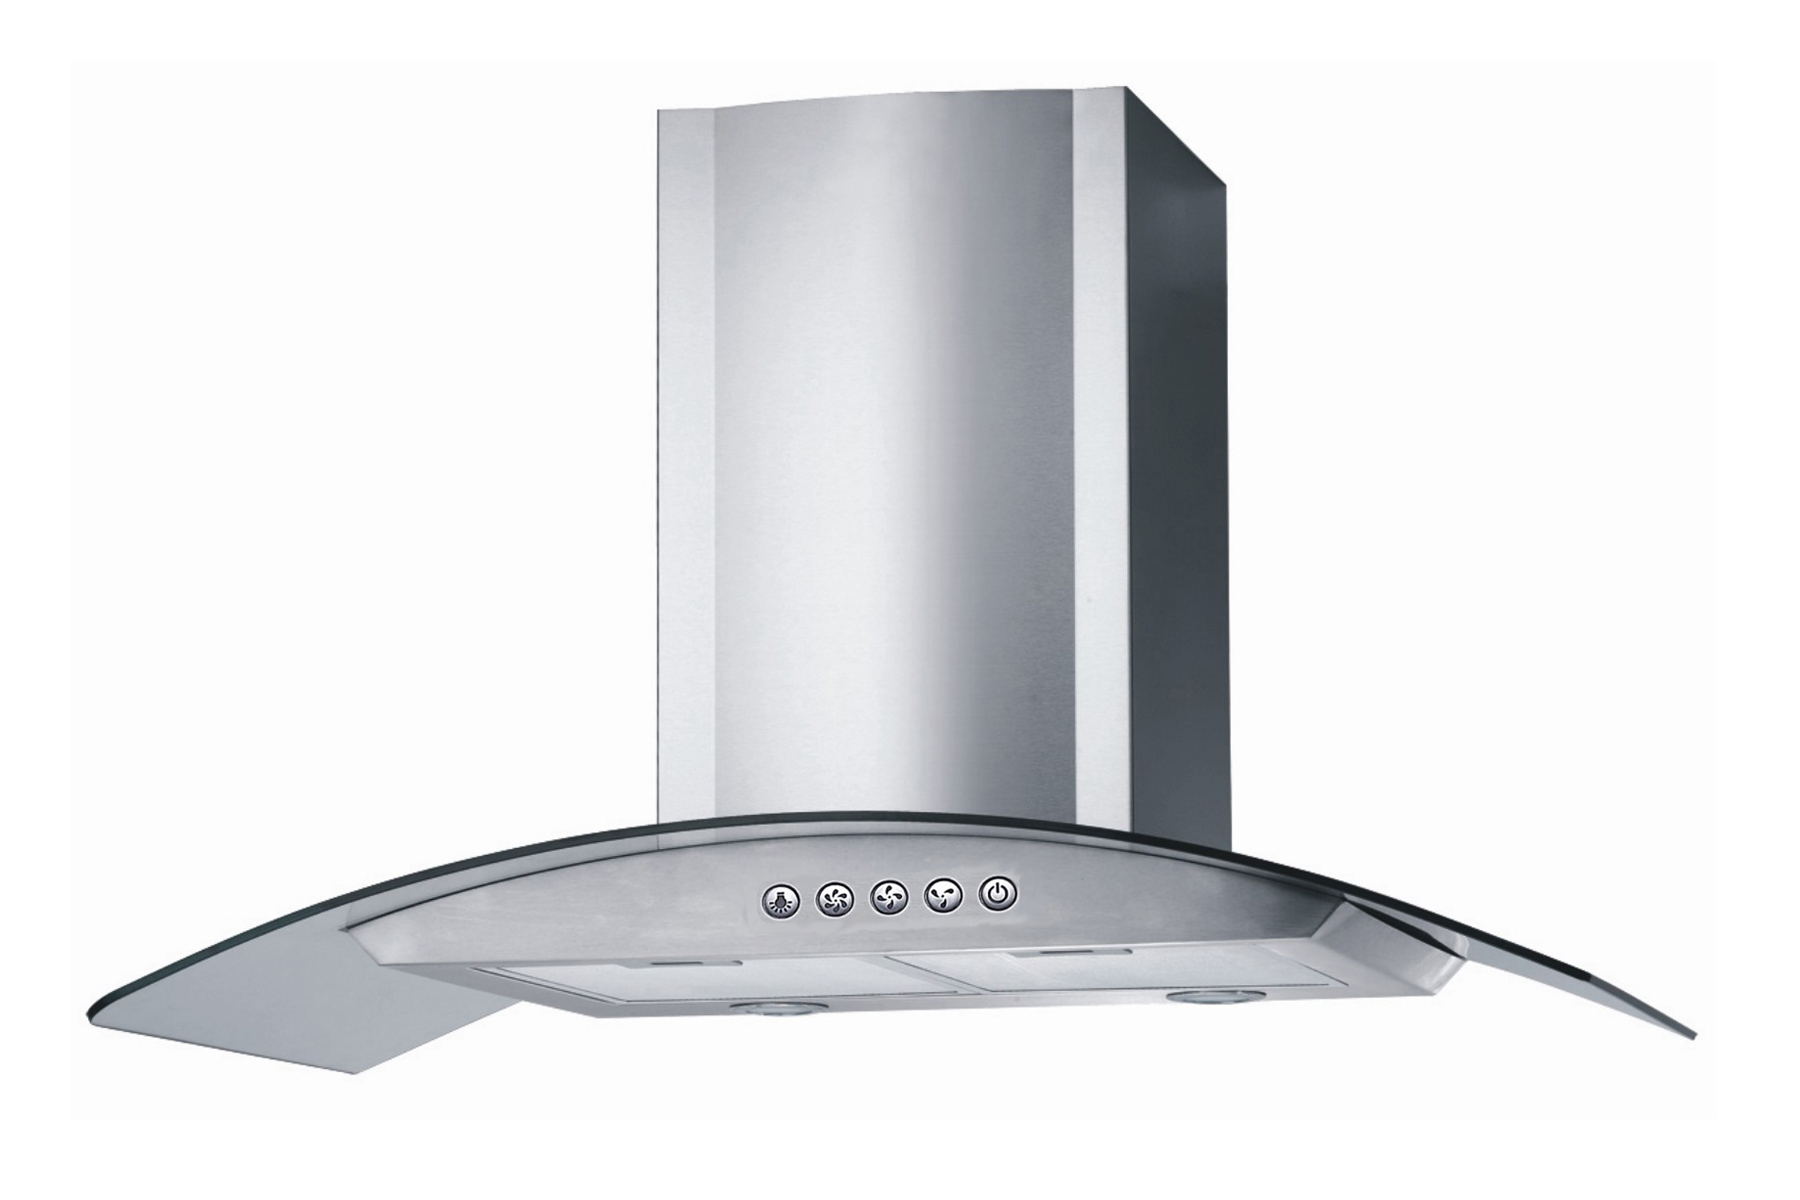 kitchen exhaust fans aide dishwasher new 30 quot stainless steel wallmount range hood cook